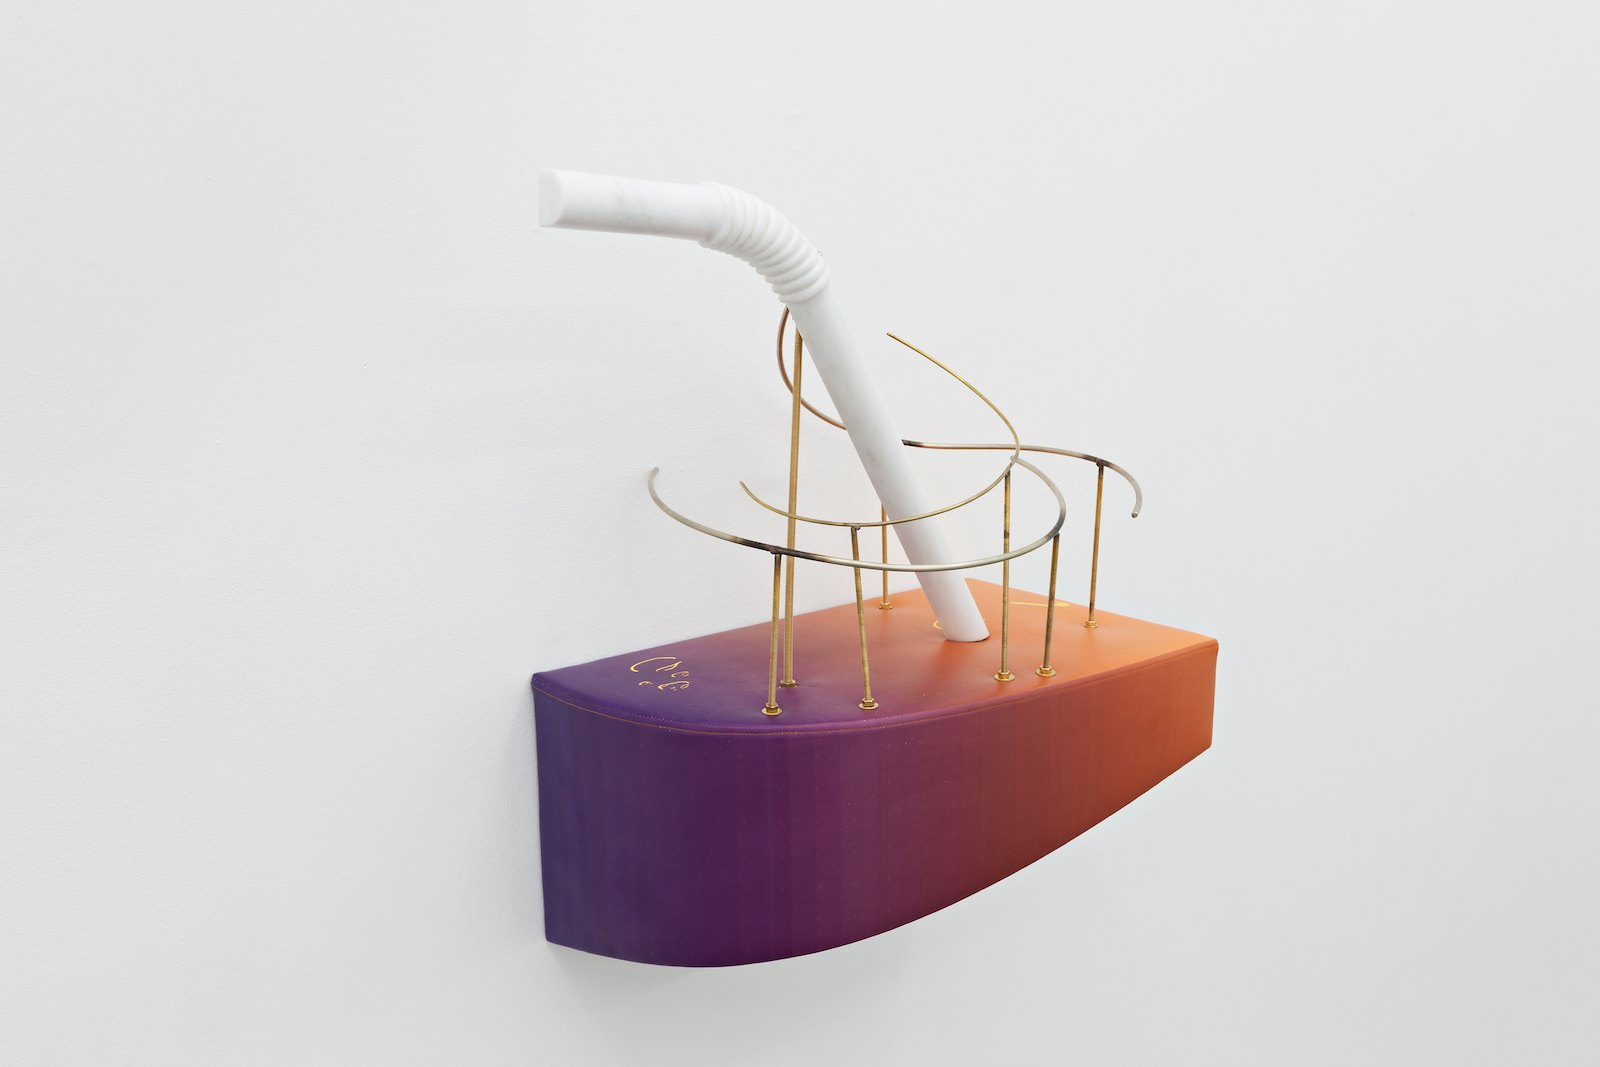 The Deconstruction Of Leisure, 2013, White marble, inkjet print on leatherette, wood, zinc, brass, bronze fittings, 70 x 58 x 32 cm